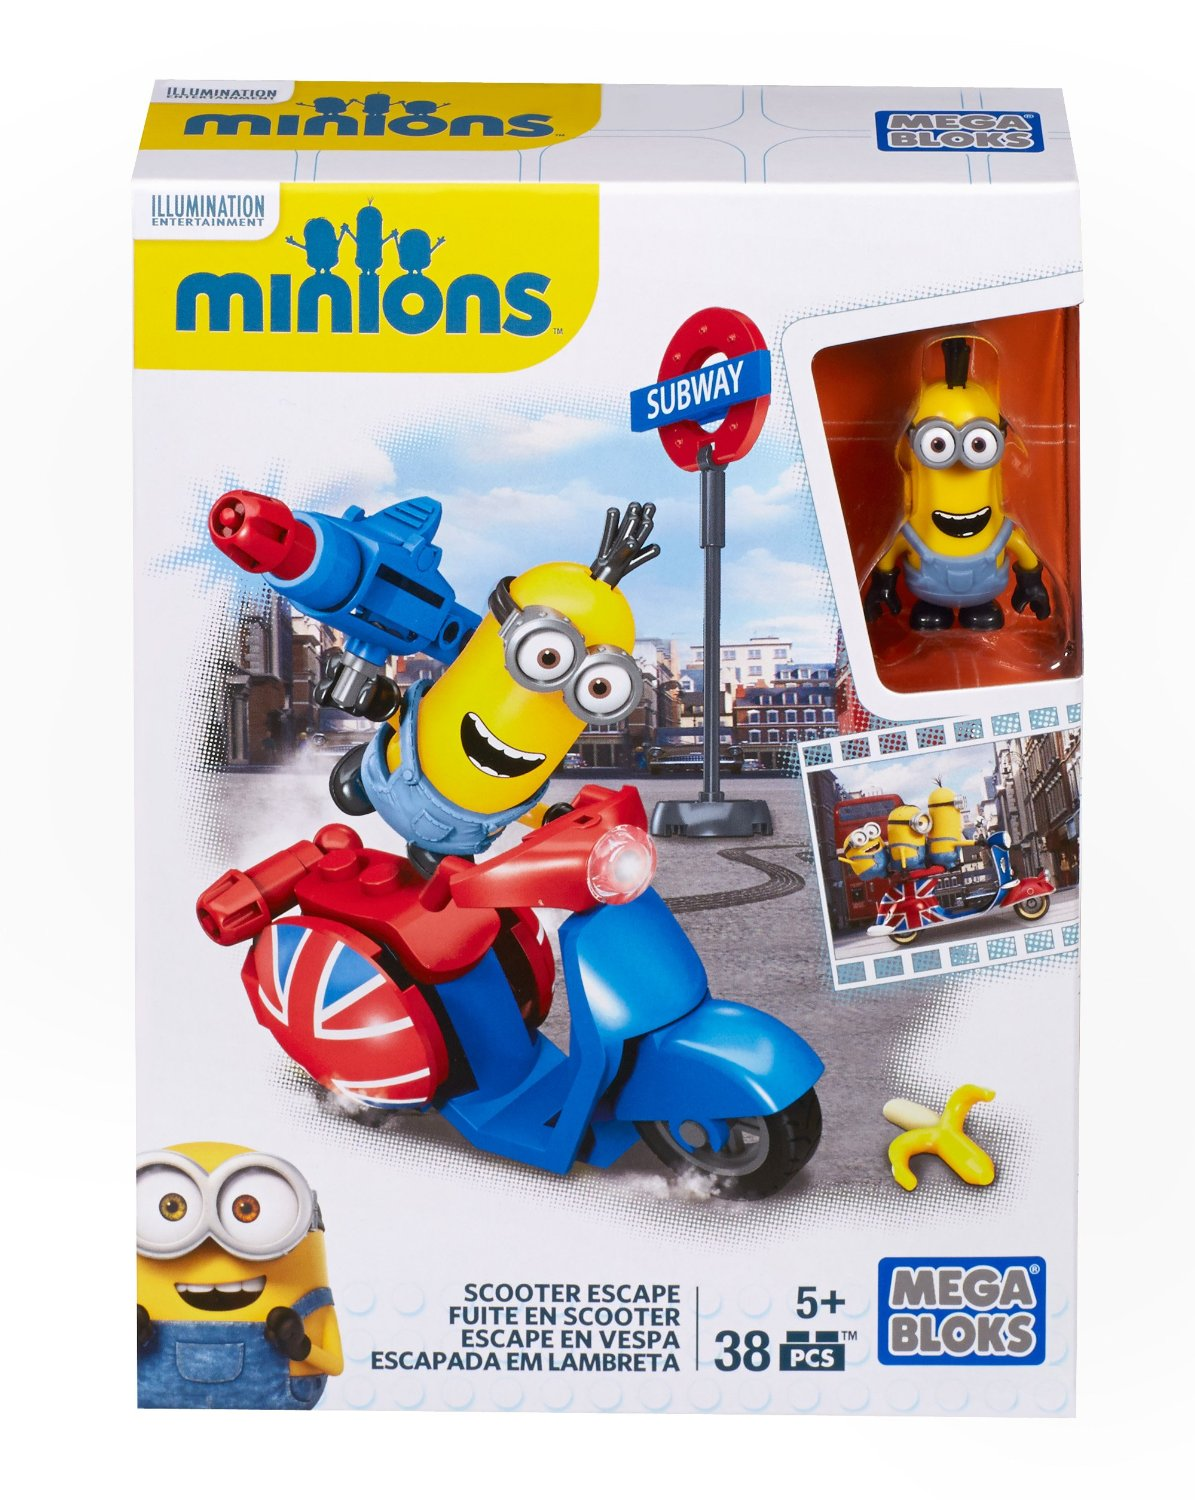 MEGA BLOKS Minions™ Scooter Escape